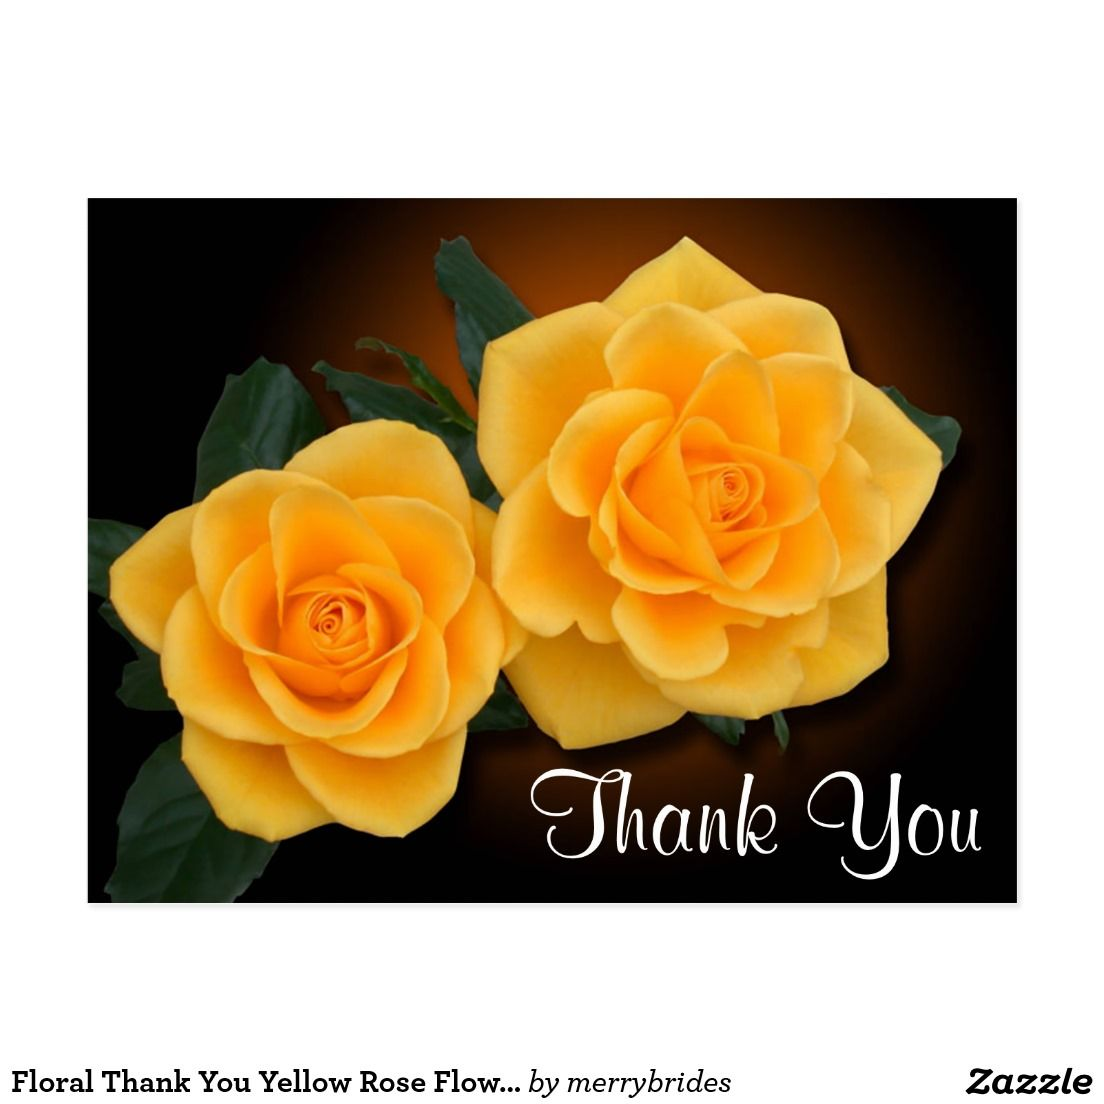 Floral Thank You Yellow Rose Flowers Postcard Zazzle Com In 2021 Beautiful Flowers Images Yellow Roses Flower Images